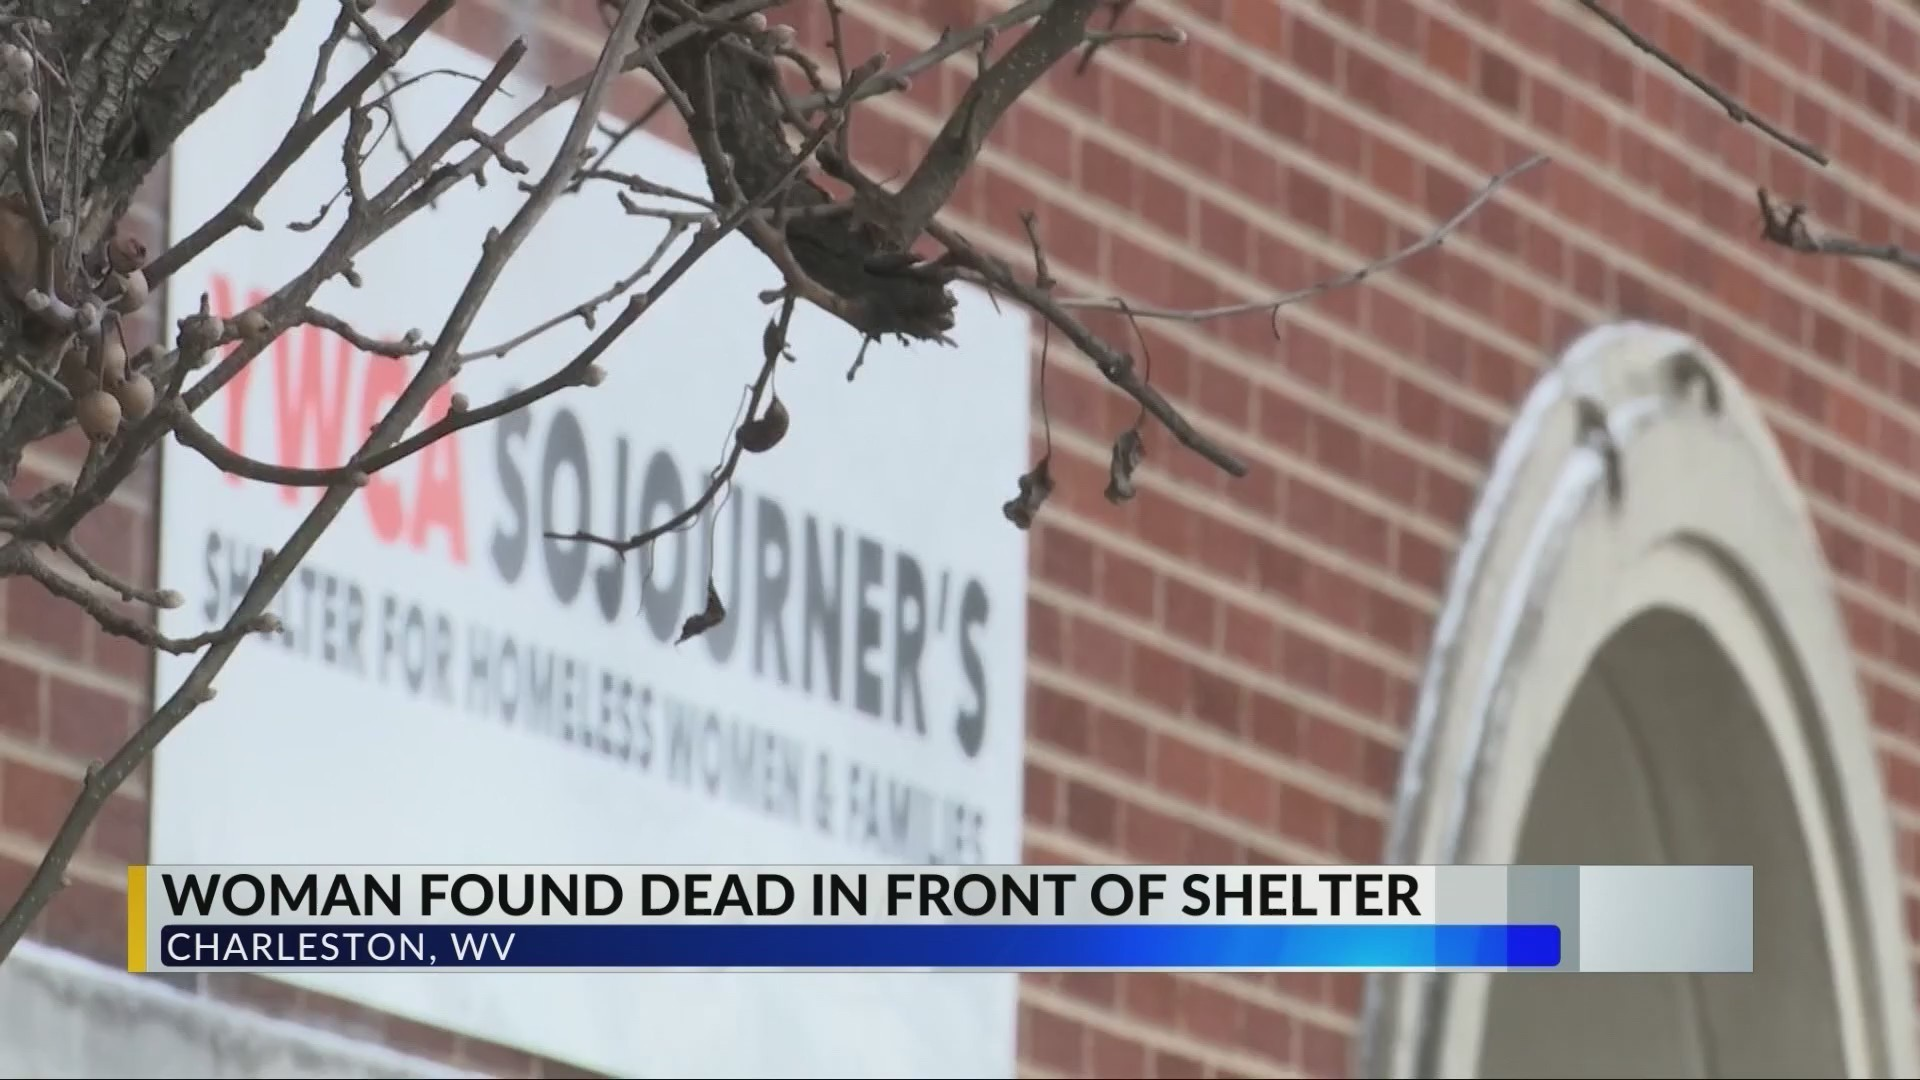 Body Discovered Outside of Charleston Women's Shelter